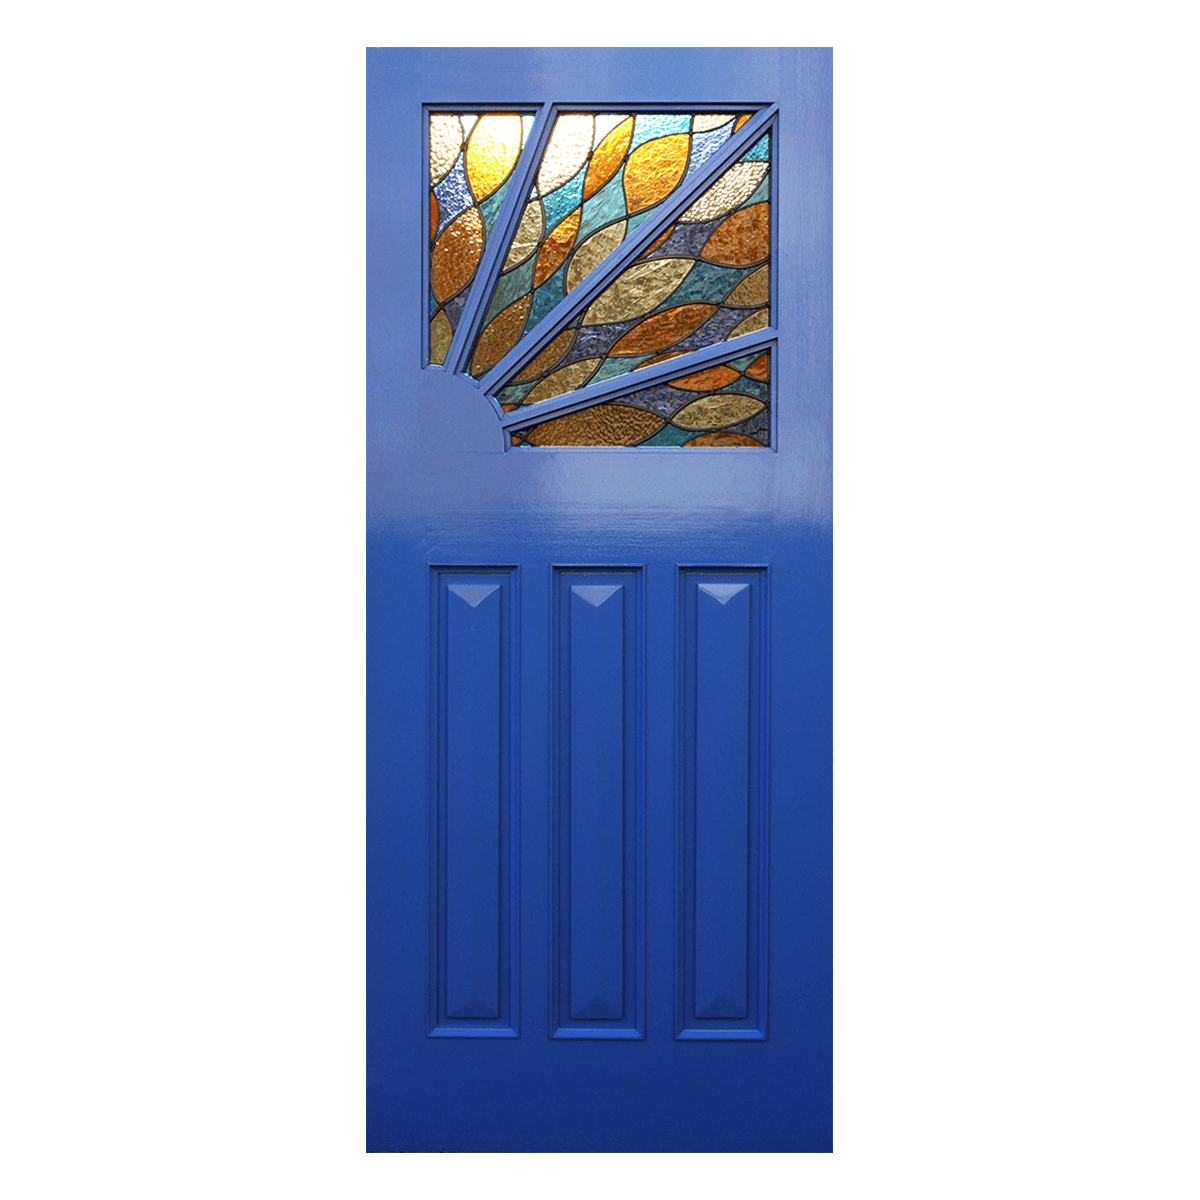 Le Meilleur Bespoke Sunburst Art Deco Door For Sale Hardwood Ce Mois Ci